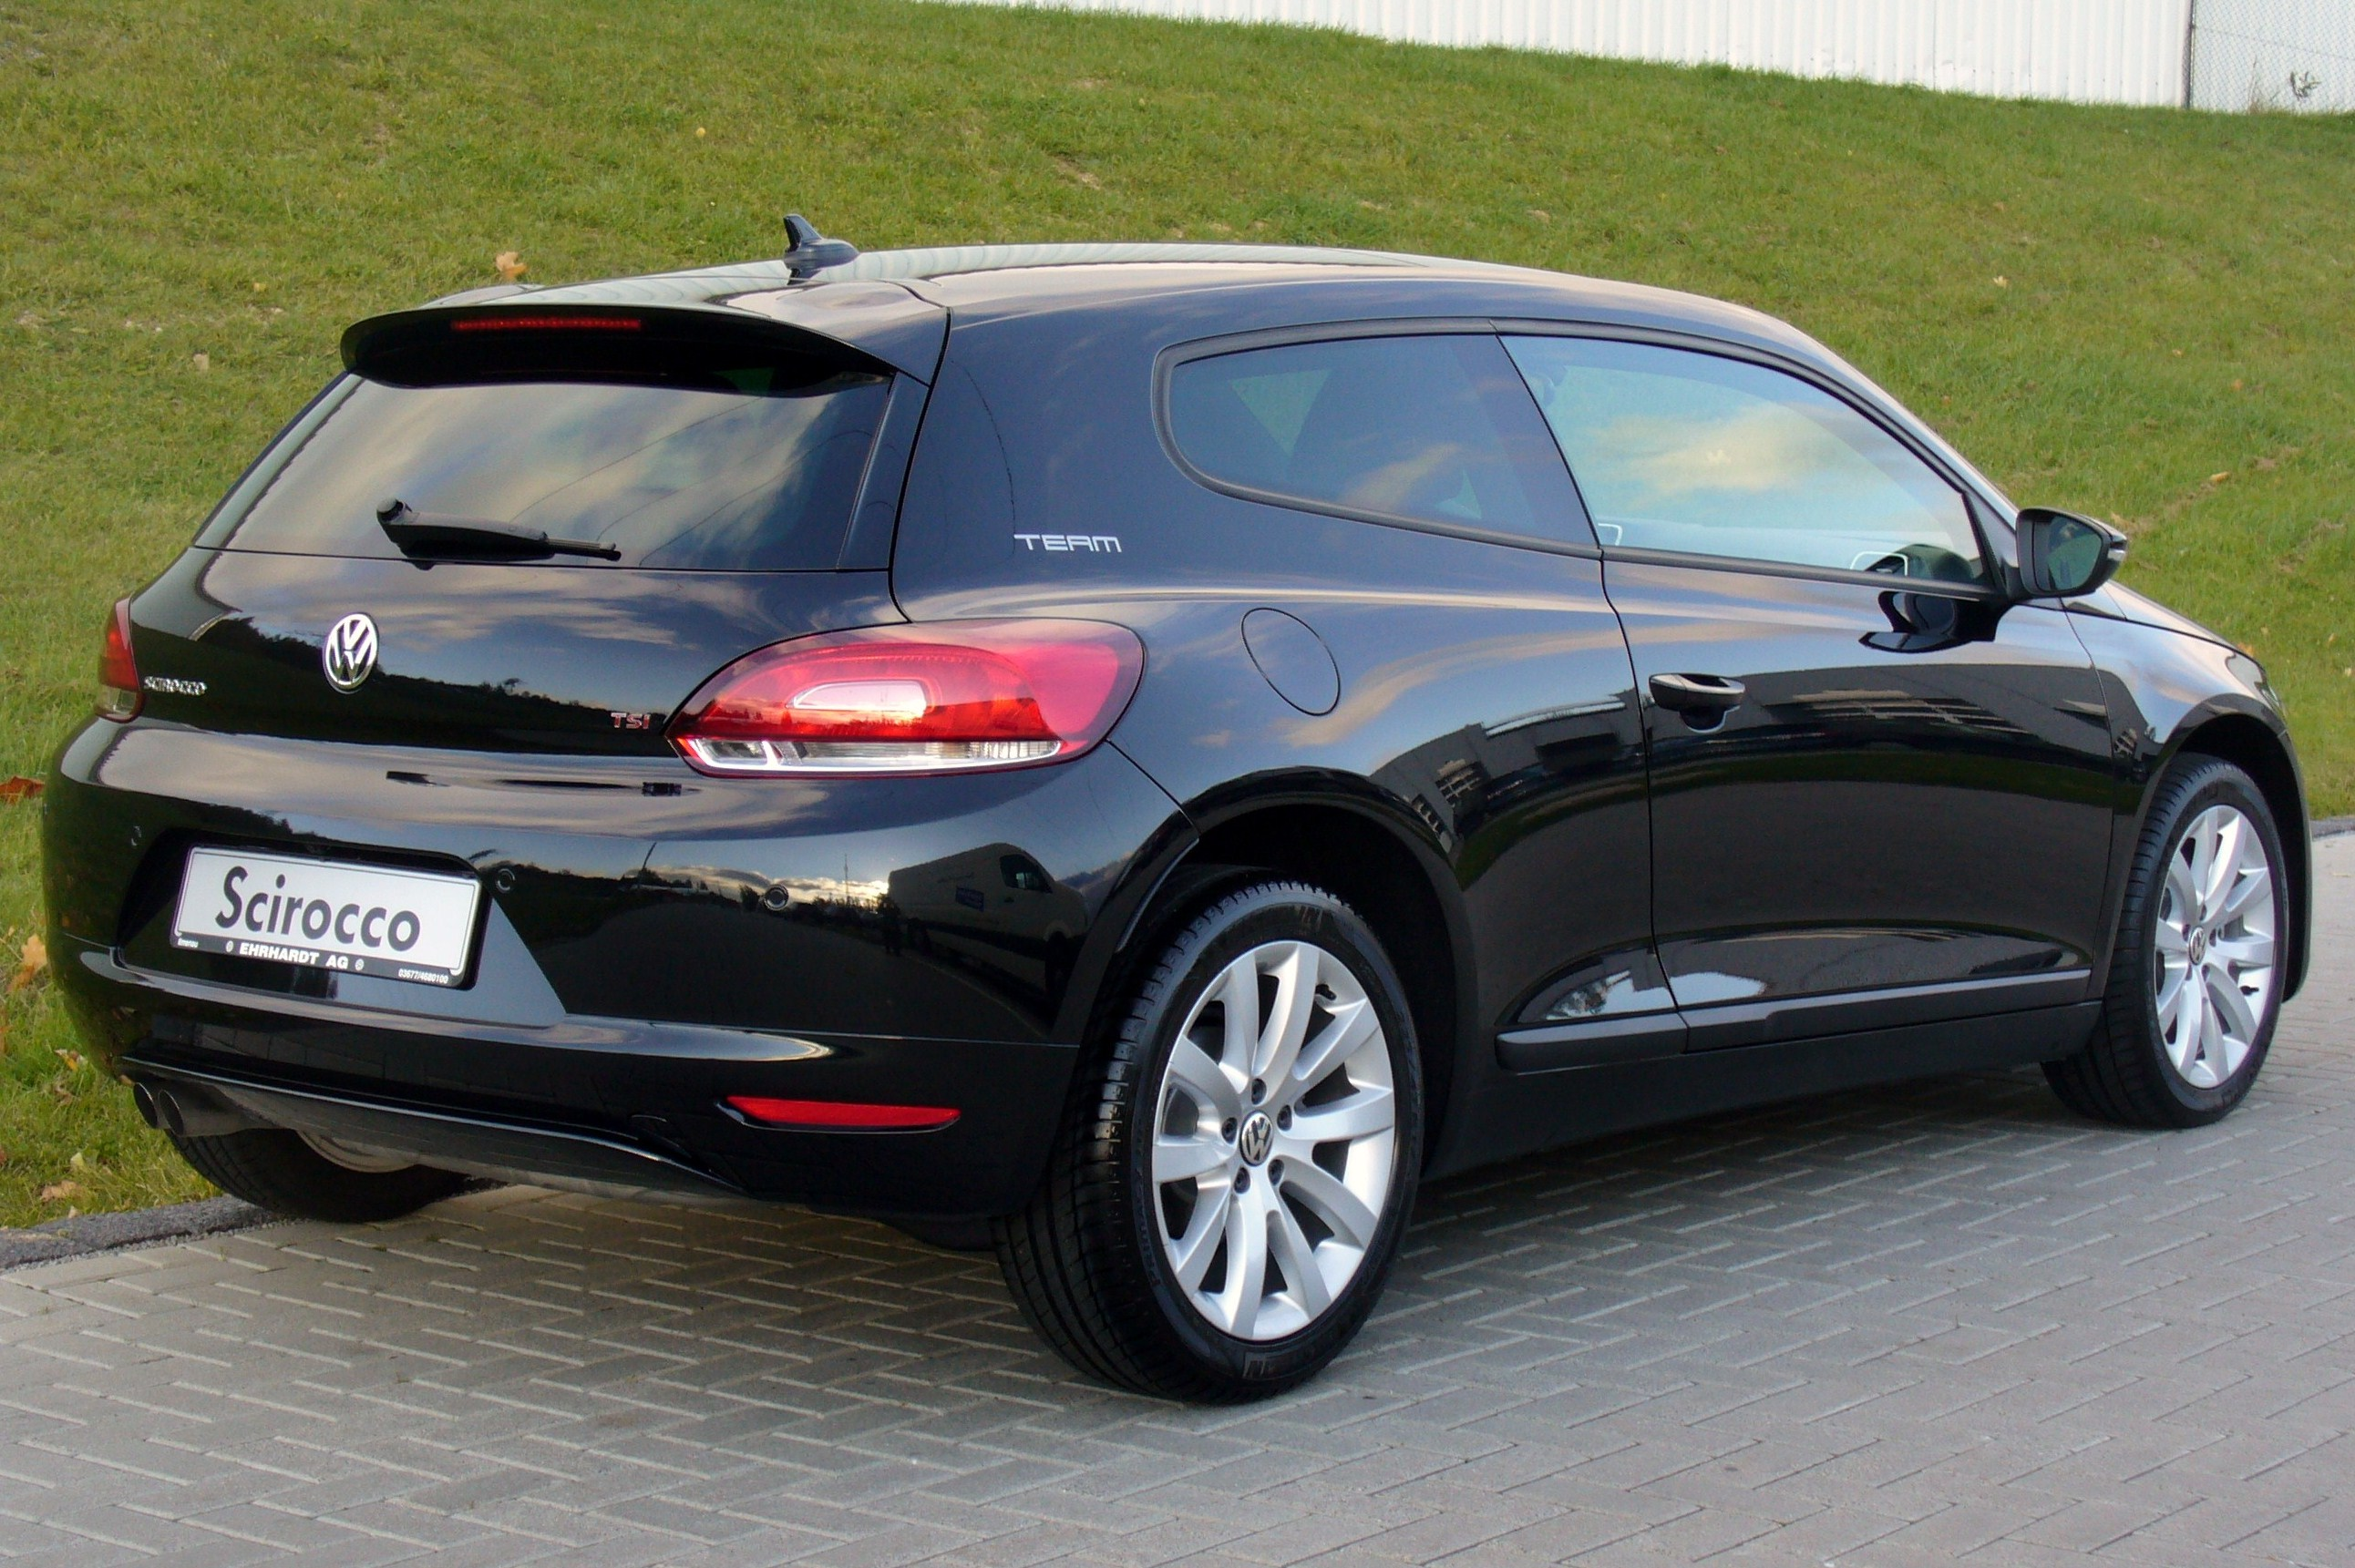 Vw Scirocco Black - Viewing Gallery